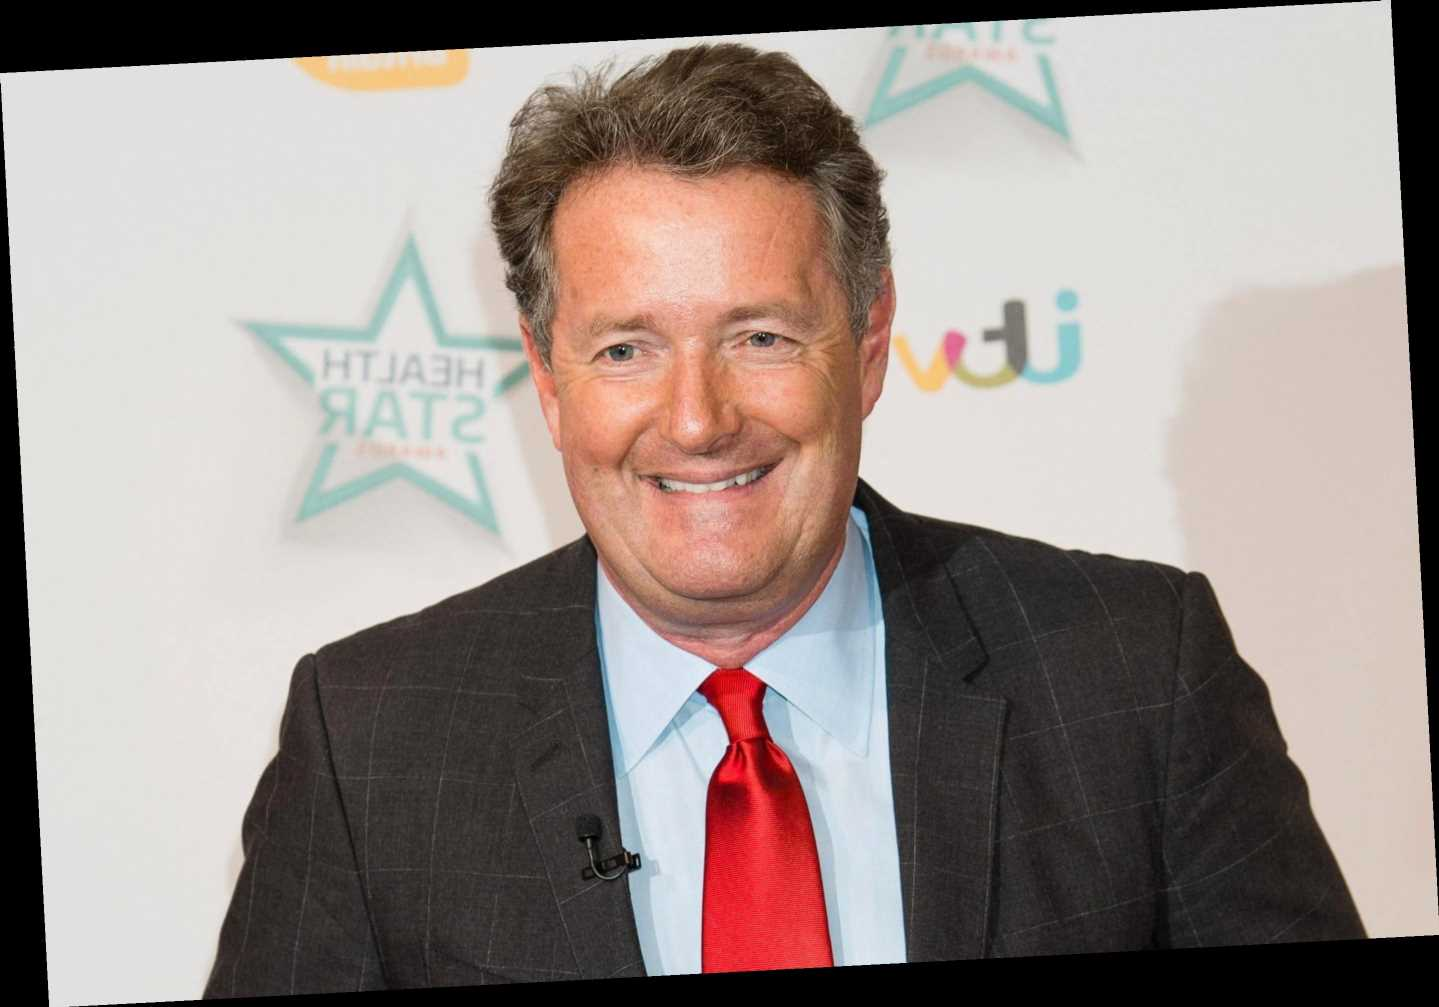 What's Piers Morgan's net worth and what are his most famous public feuds?